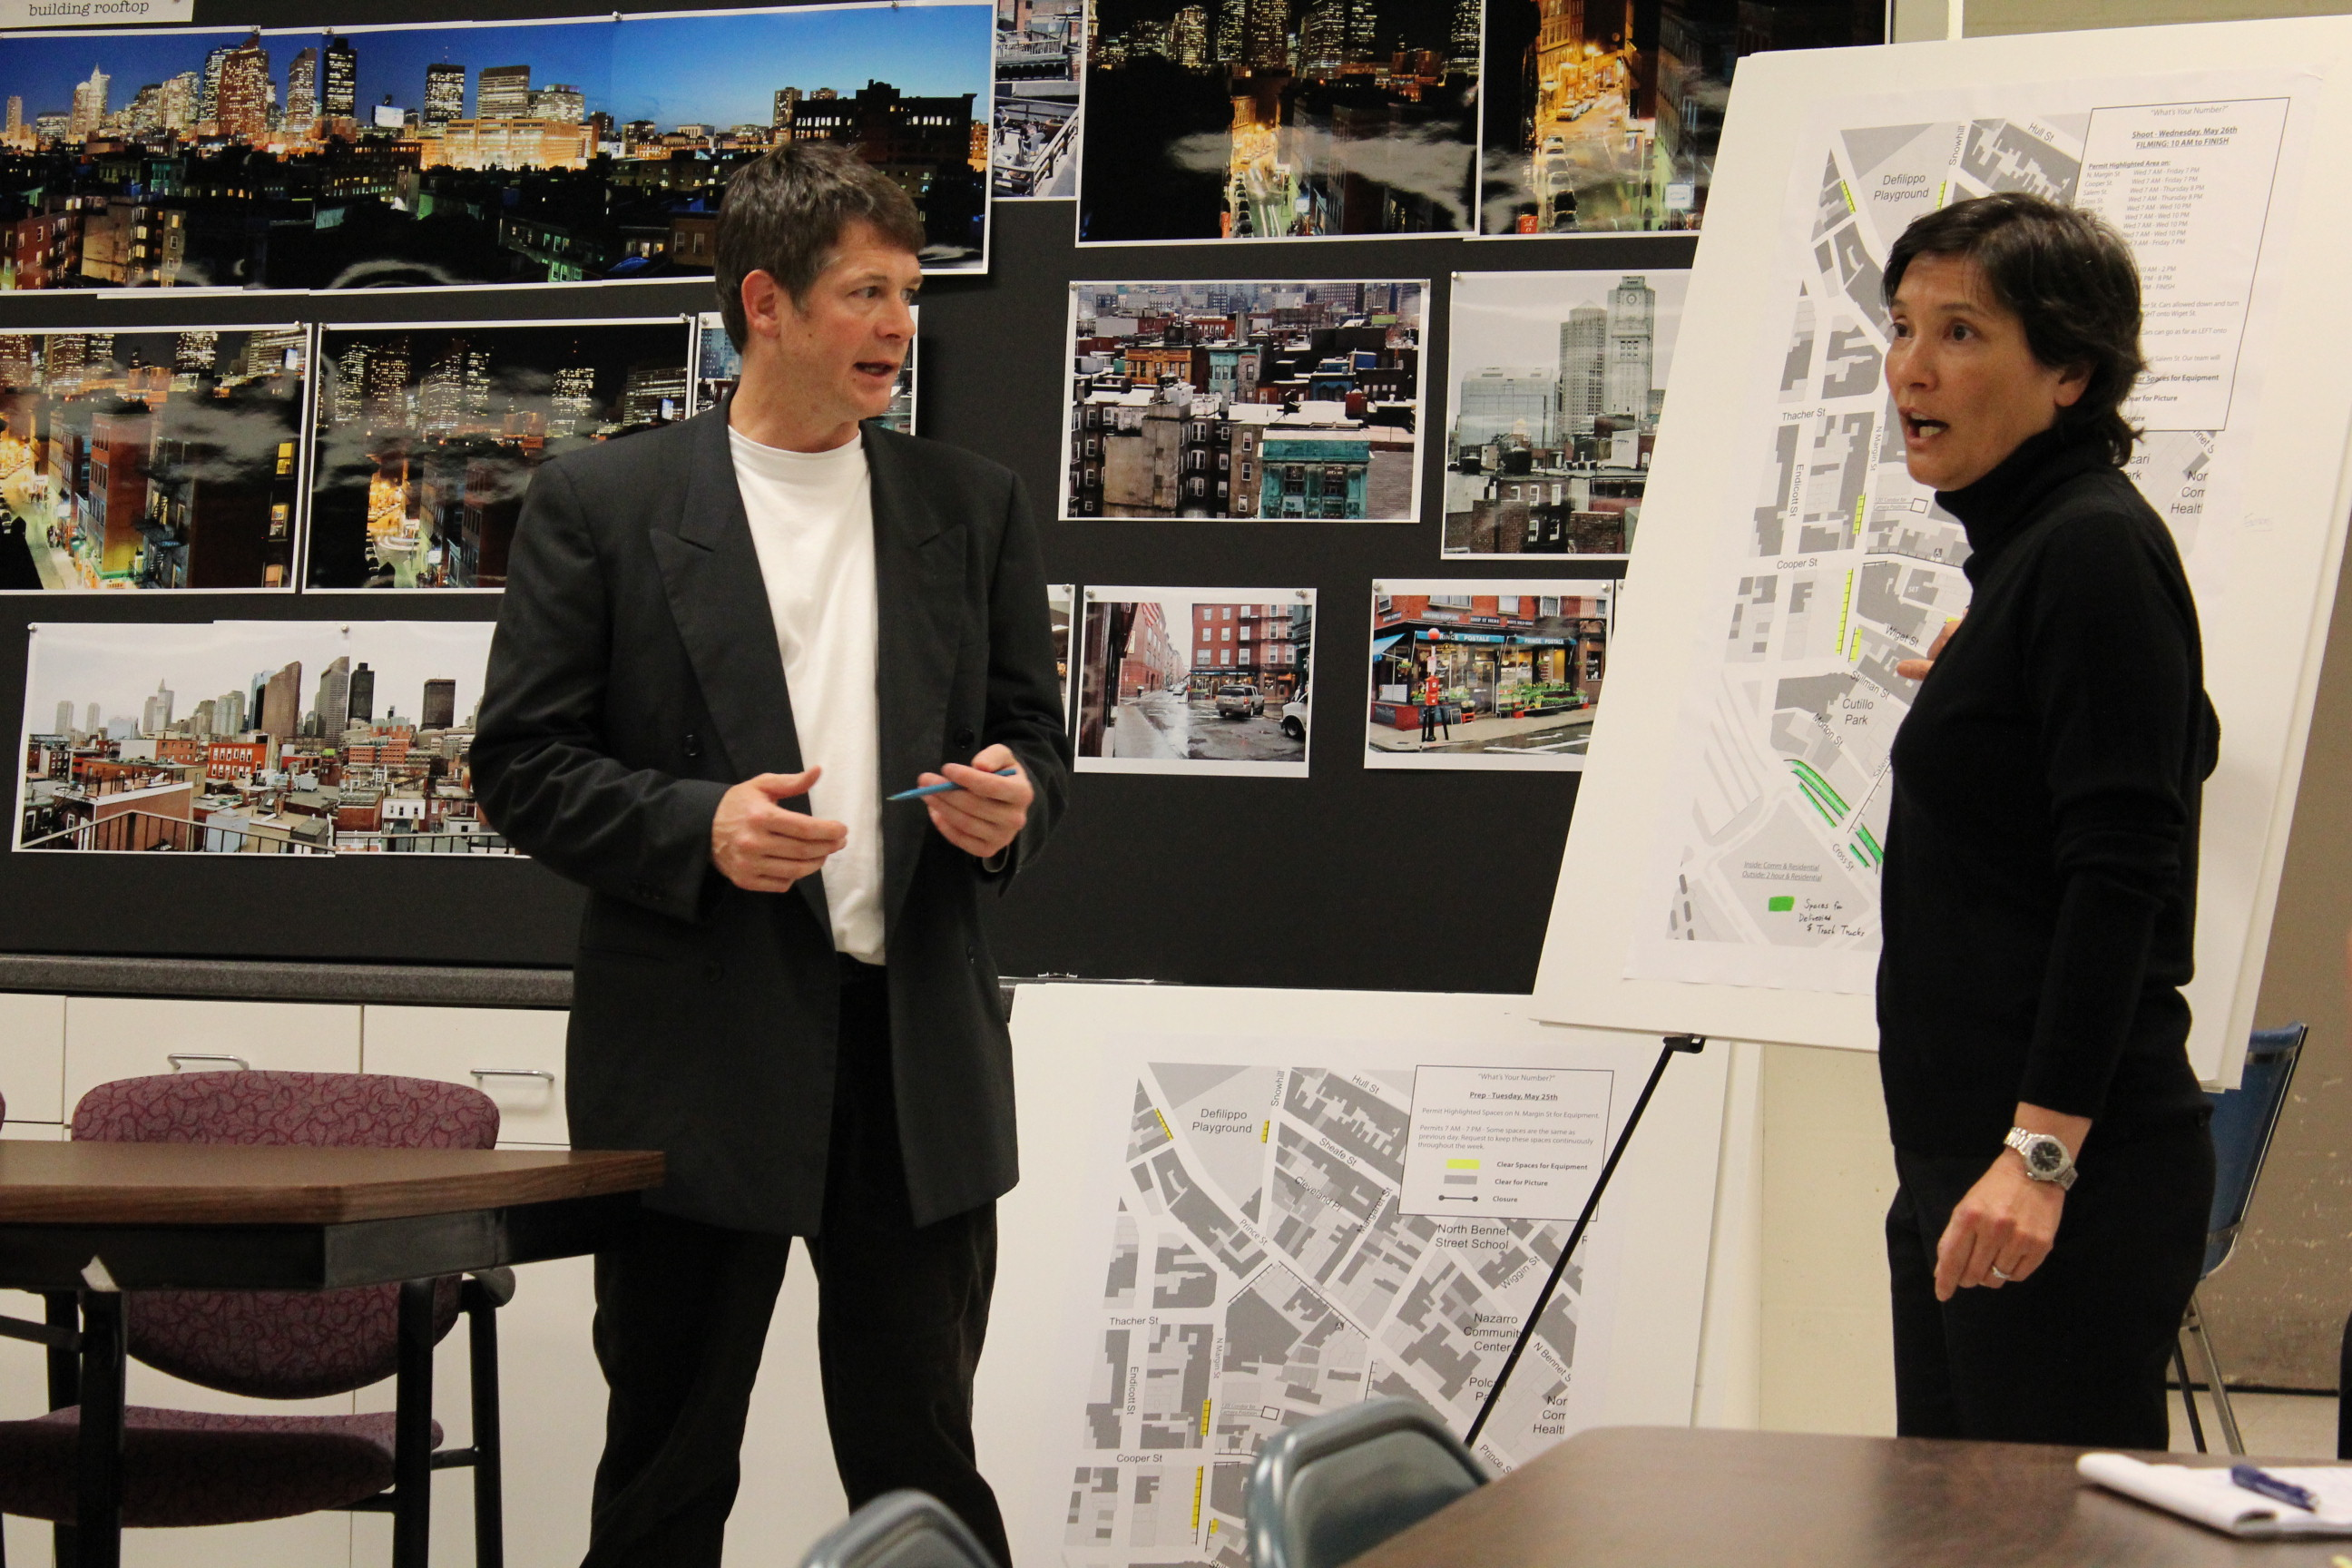 Mark Fitzgerald, Location Manager, and Nan Morales, Executive Producer, explain the schedule.